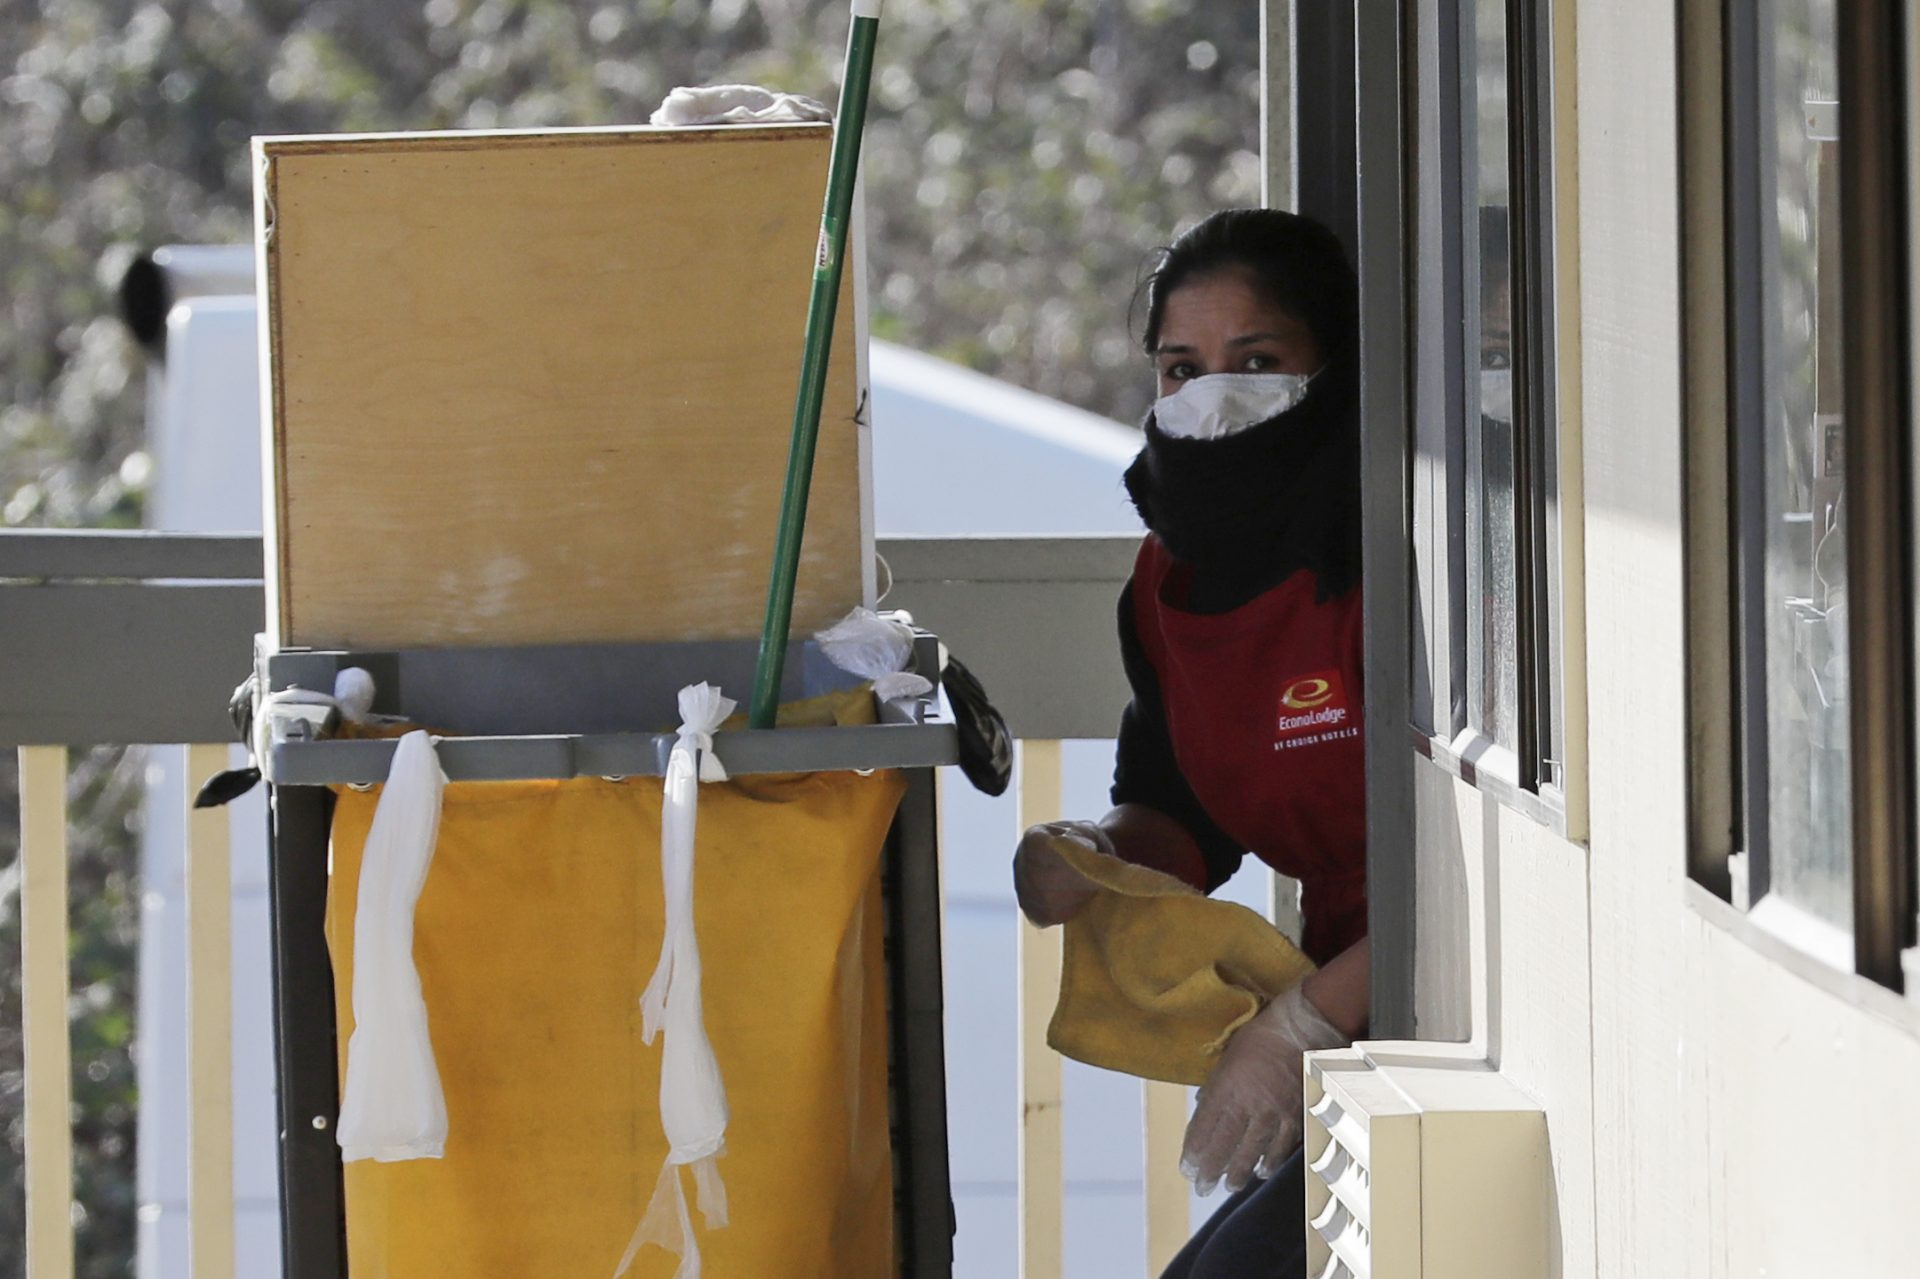 A housekeeping worker wears a mask as she cleans a room, Wednesday, March 4, 2020, at an Econo Lodge motel in Kent, Wash. King County Executive Dow Constantine said Wednesday that the county had purchased the 85-bed motel south of Seattle to house patients for recovery and isolation due to the COVID-19 coronavirus.